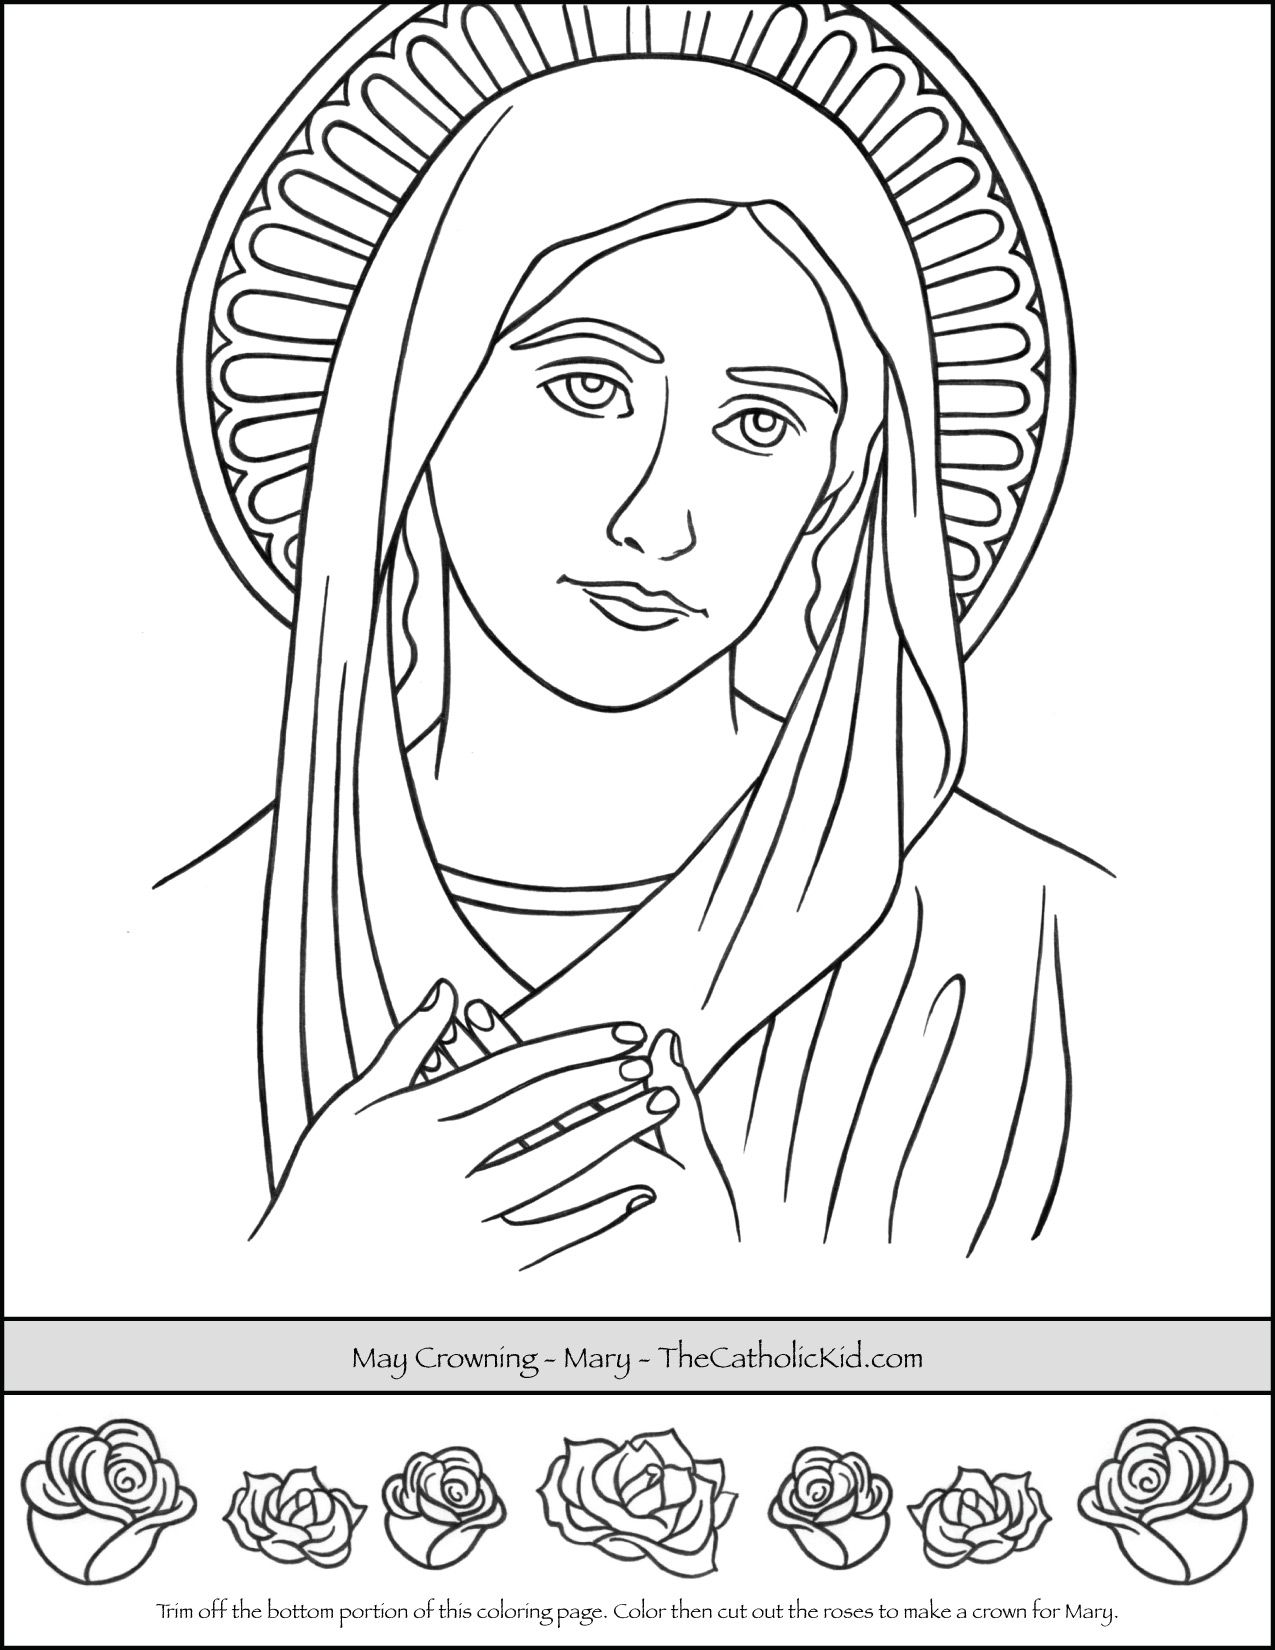 May Crowning Coloring Page Sunday School Coloring Pages Coloring Pages Bible Coloring Pages